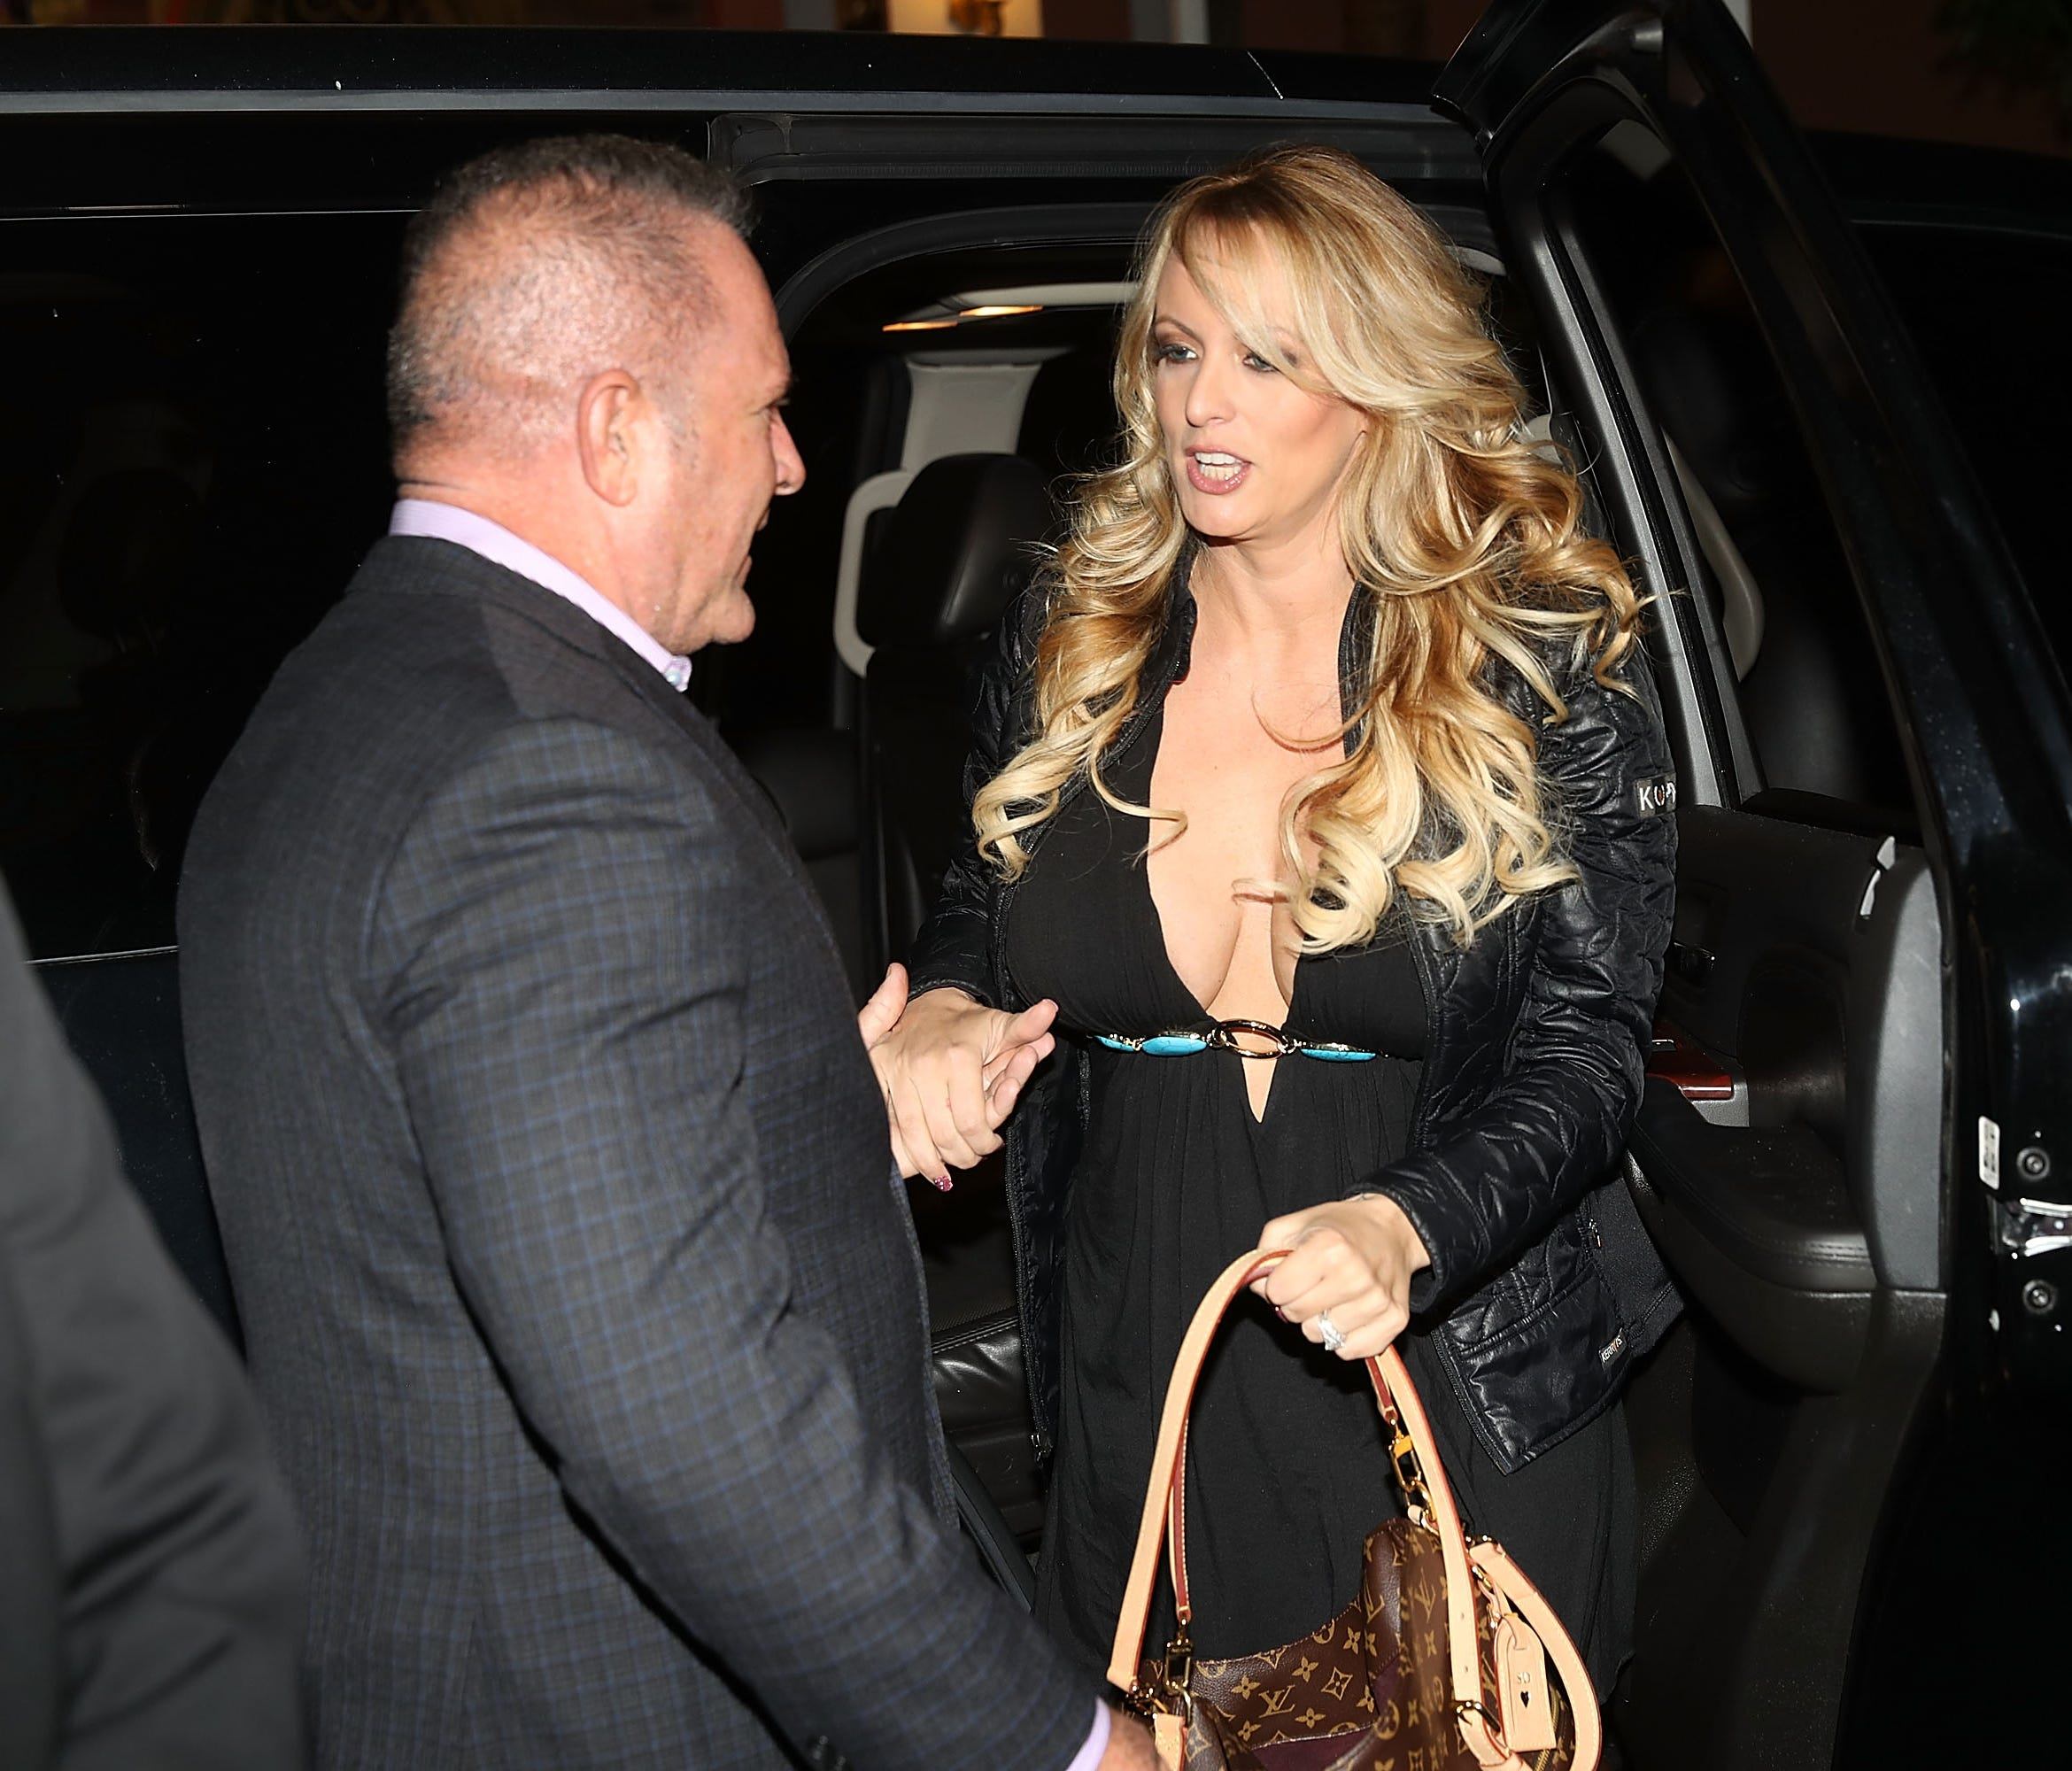 Stormy Daniels arrives to perform at the Solid Gold Fort Lauderdale strip club on March 9, 2018 in Pompano Beach, Fla.